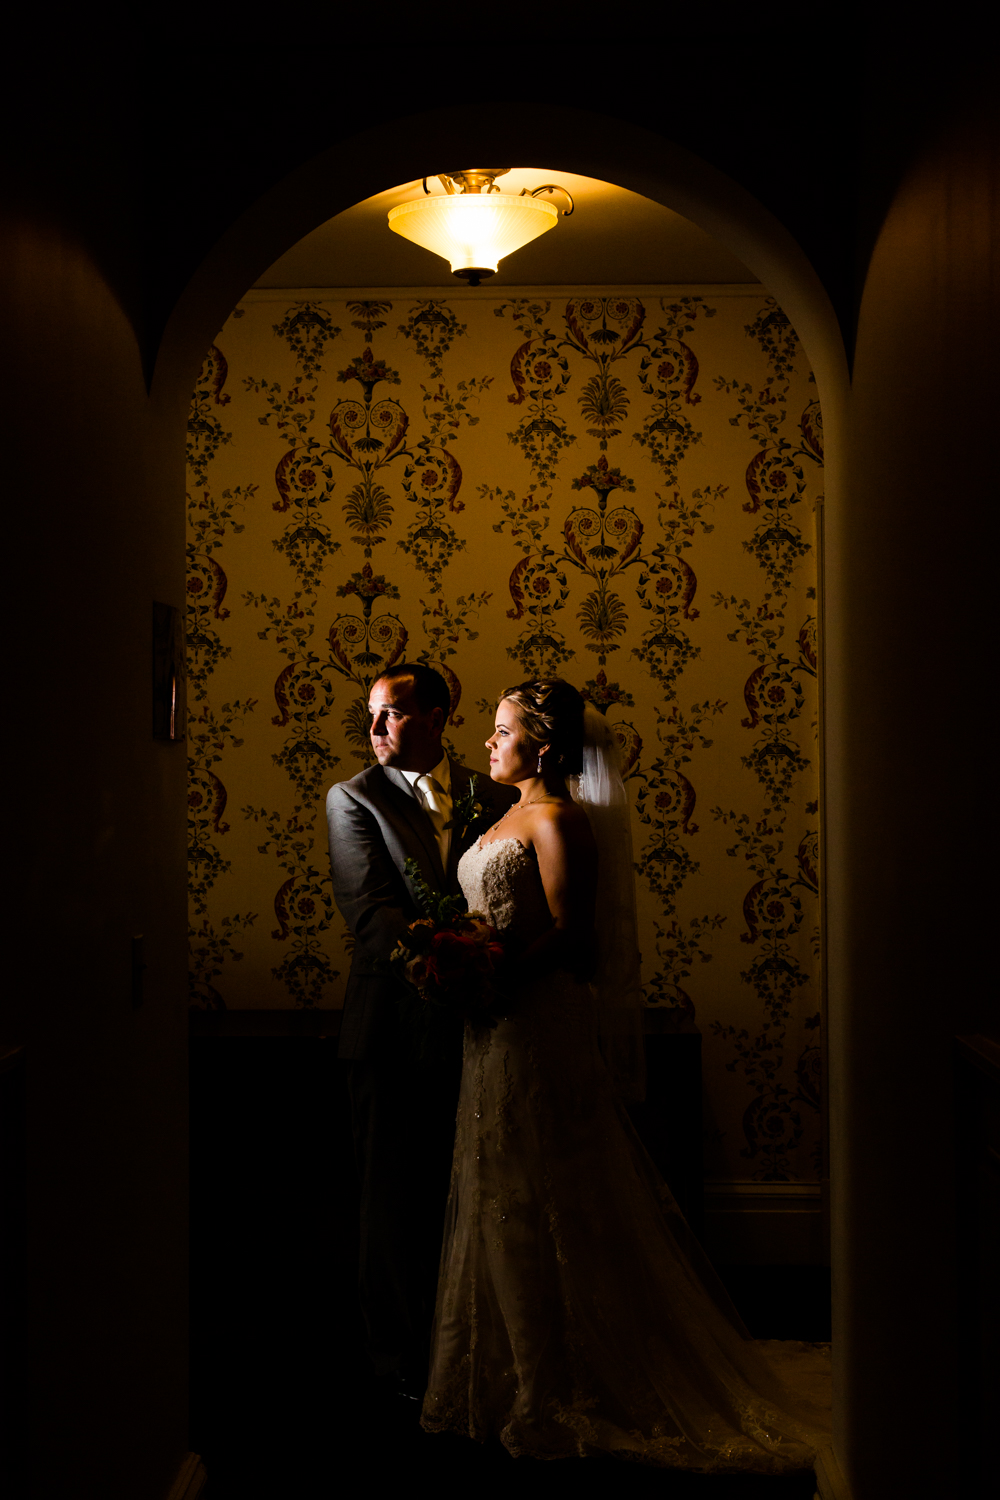 Moody portrait of bride and groom at the Lincklaen House in Cazenovia, NY.